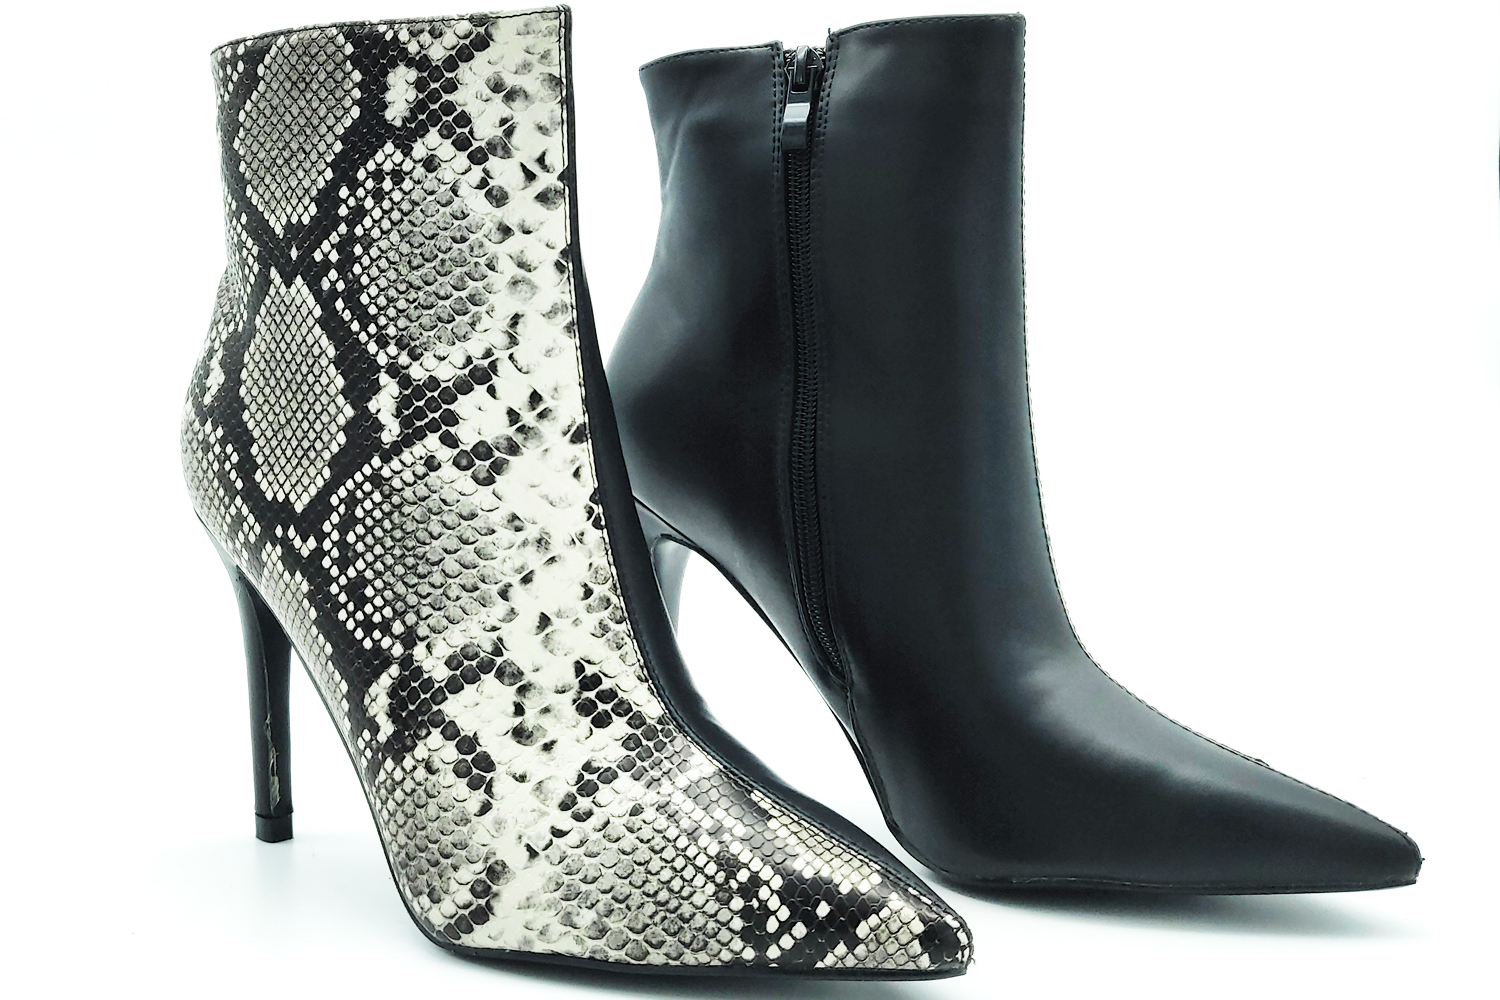 Bottines chaussures femme python serpent sexy haute hiver imitation cuir